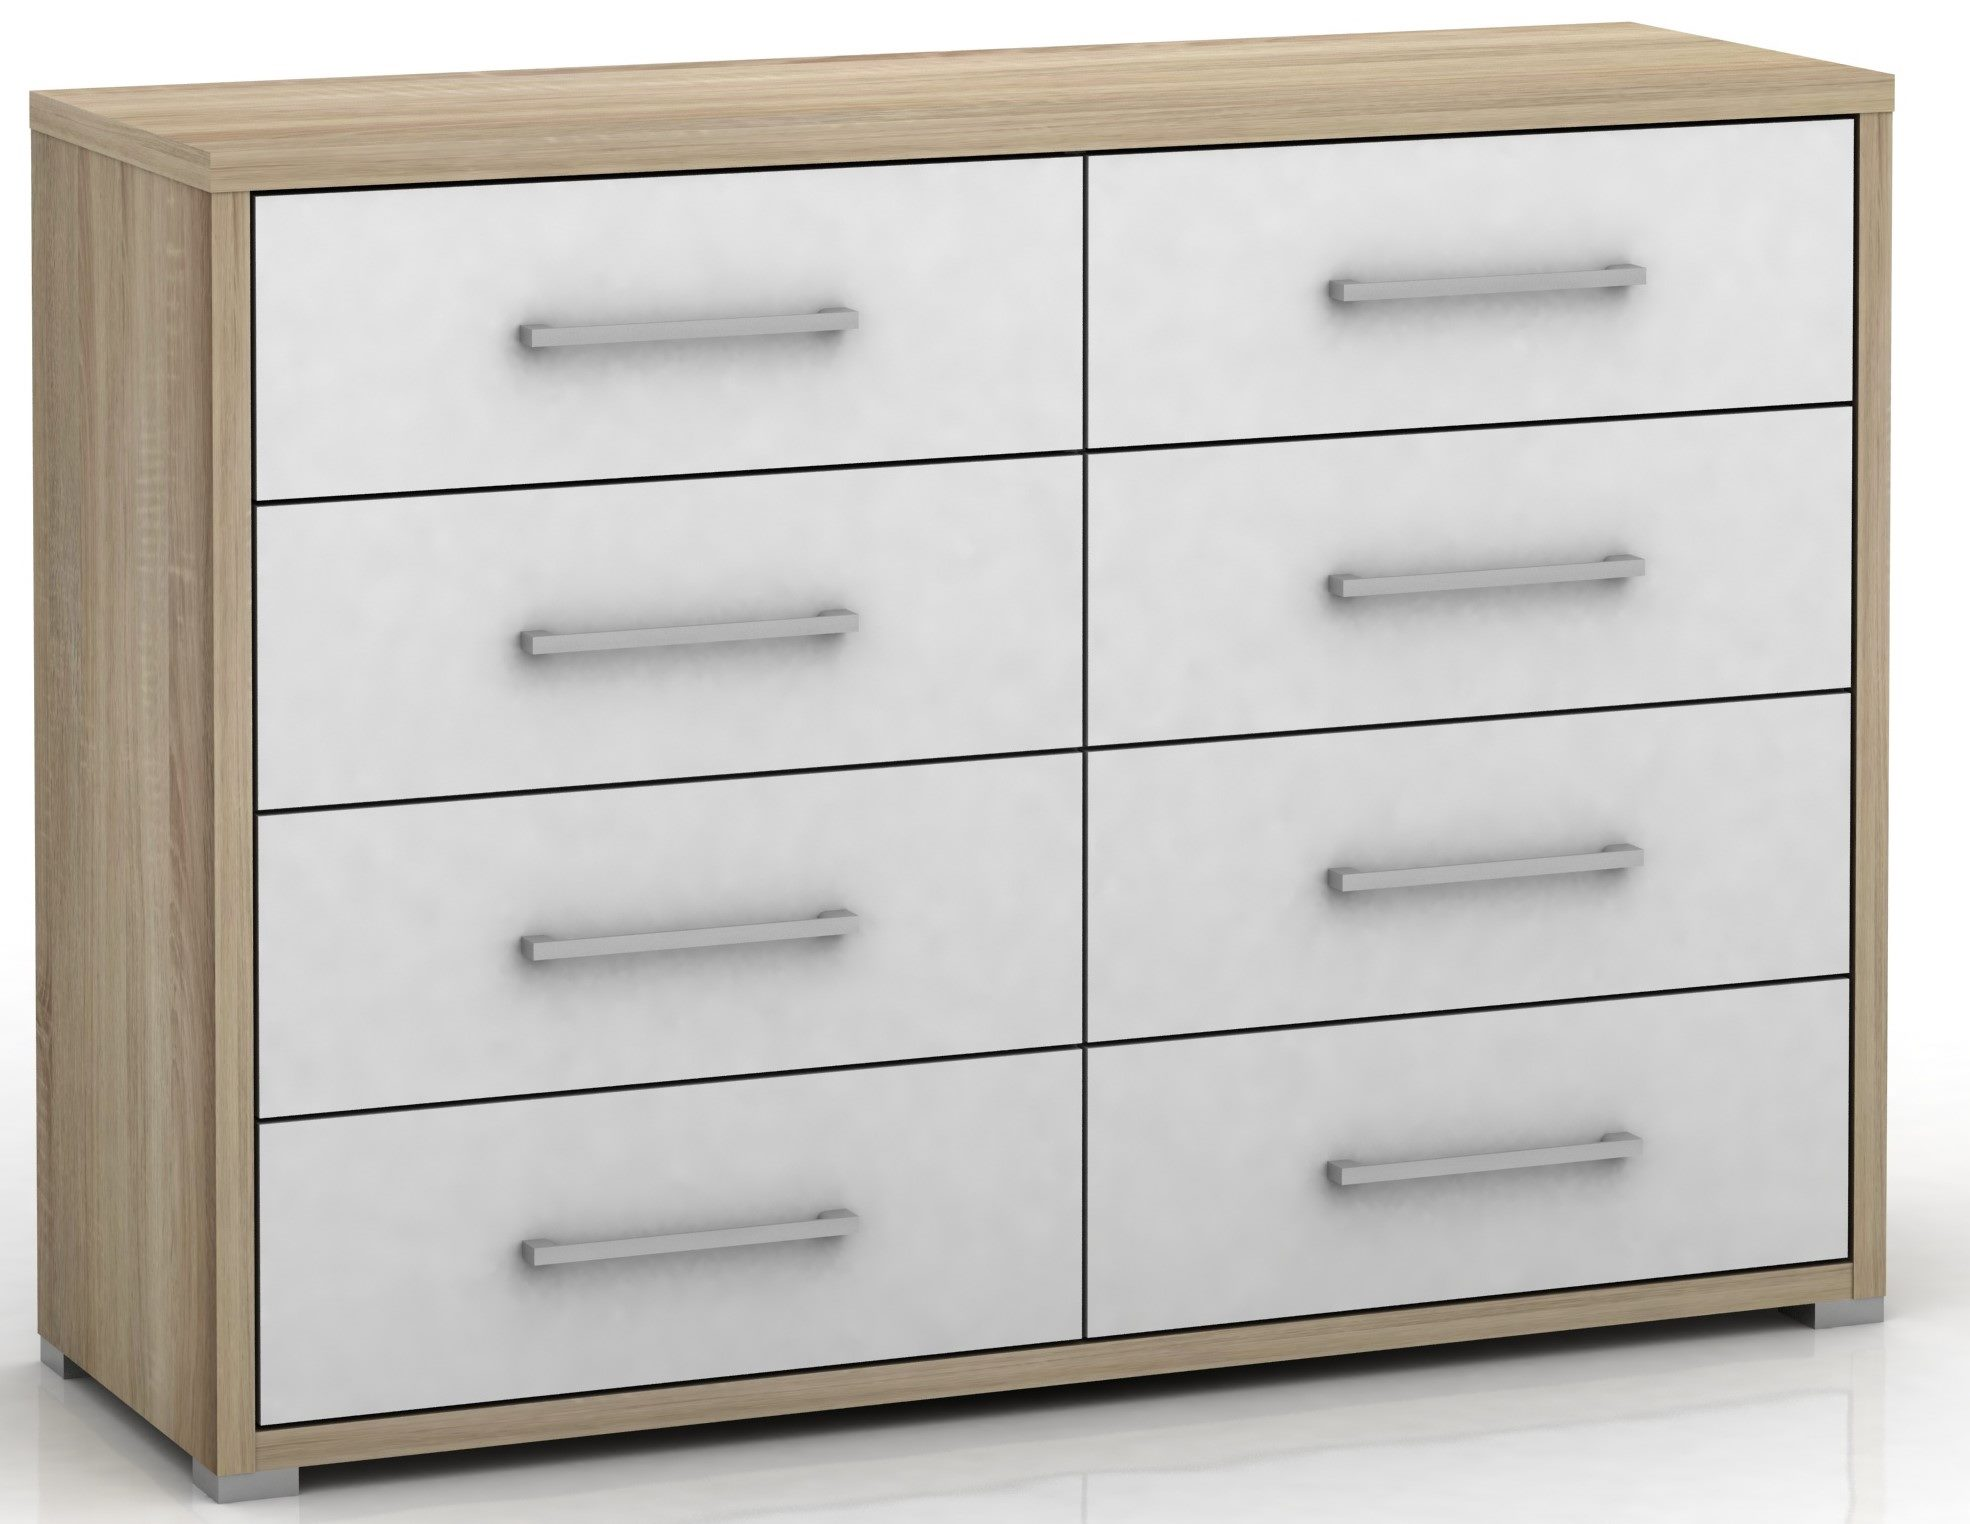 Chest Of Drawers.Lowboy Dresser Chest Of Drawers